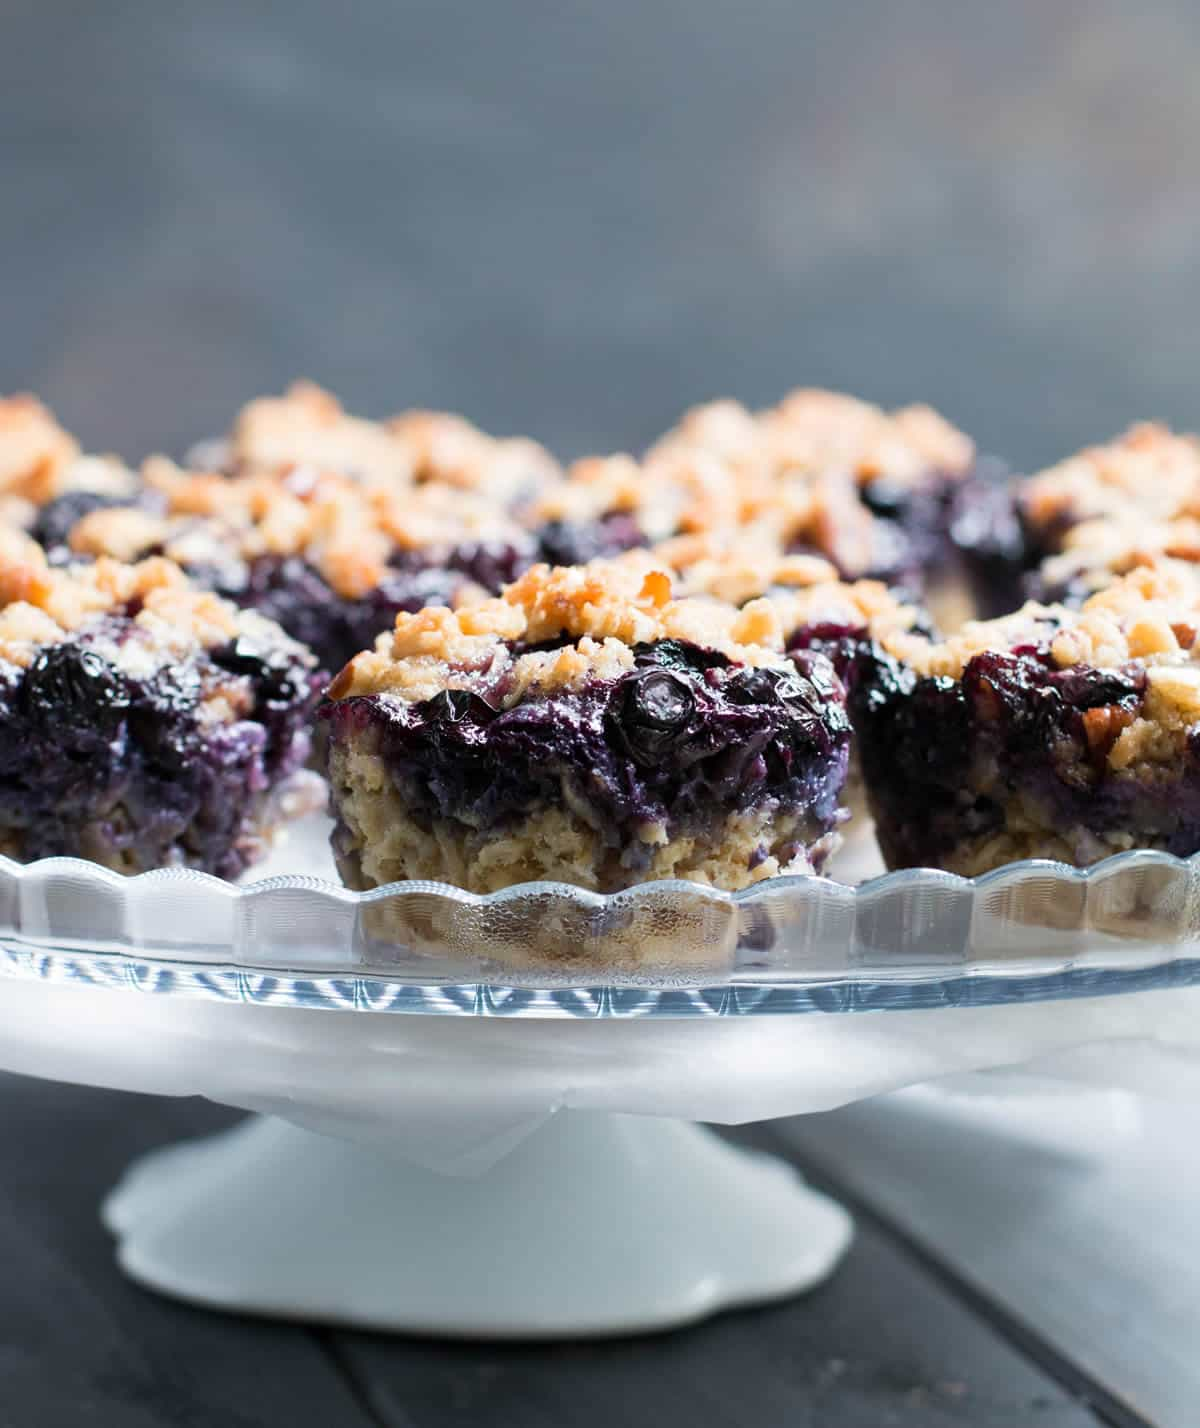 Blueberry Pie Baked Oatmeal. A pile of fresh blueberries and buttery crumb topping create a delicious fruity pie layer on top of hearty baked oatmeal.